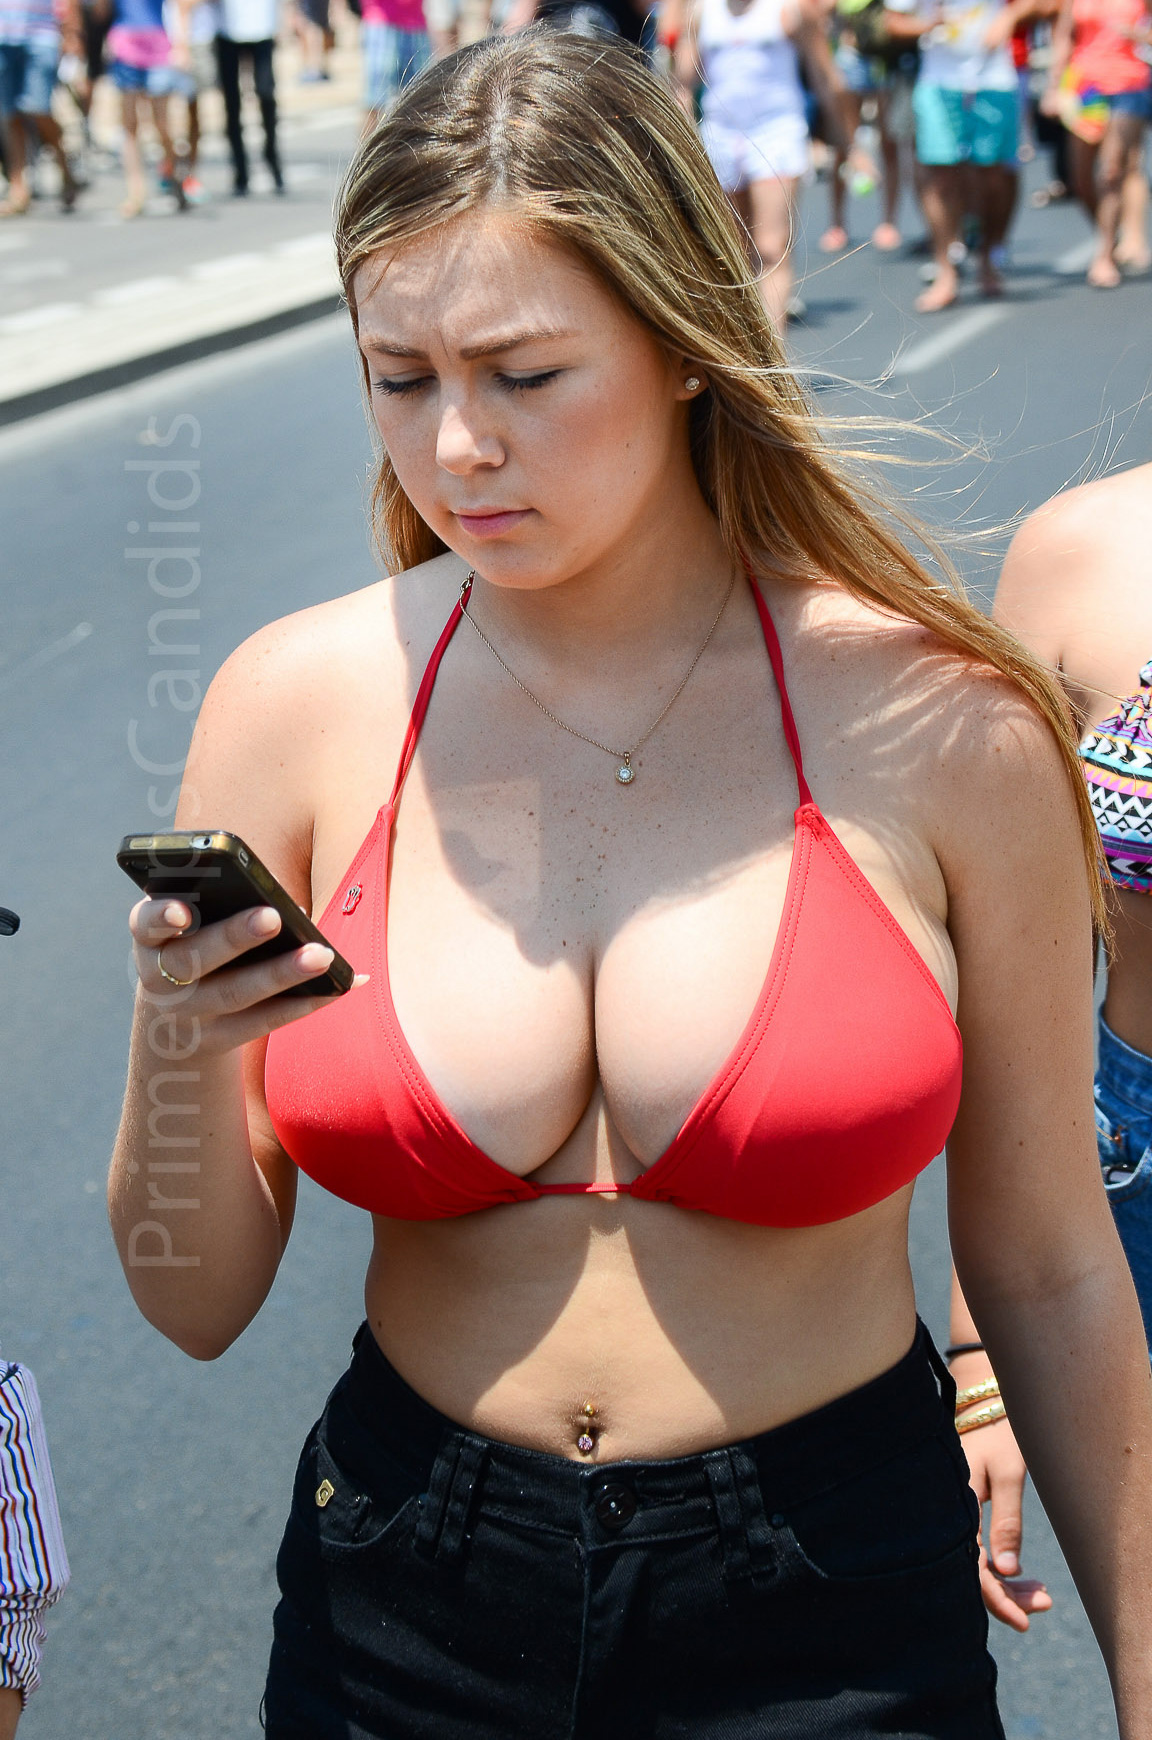 busty cleavage porn